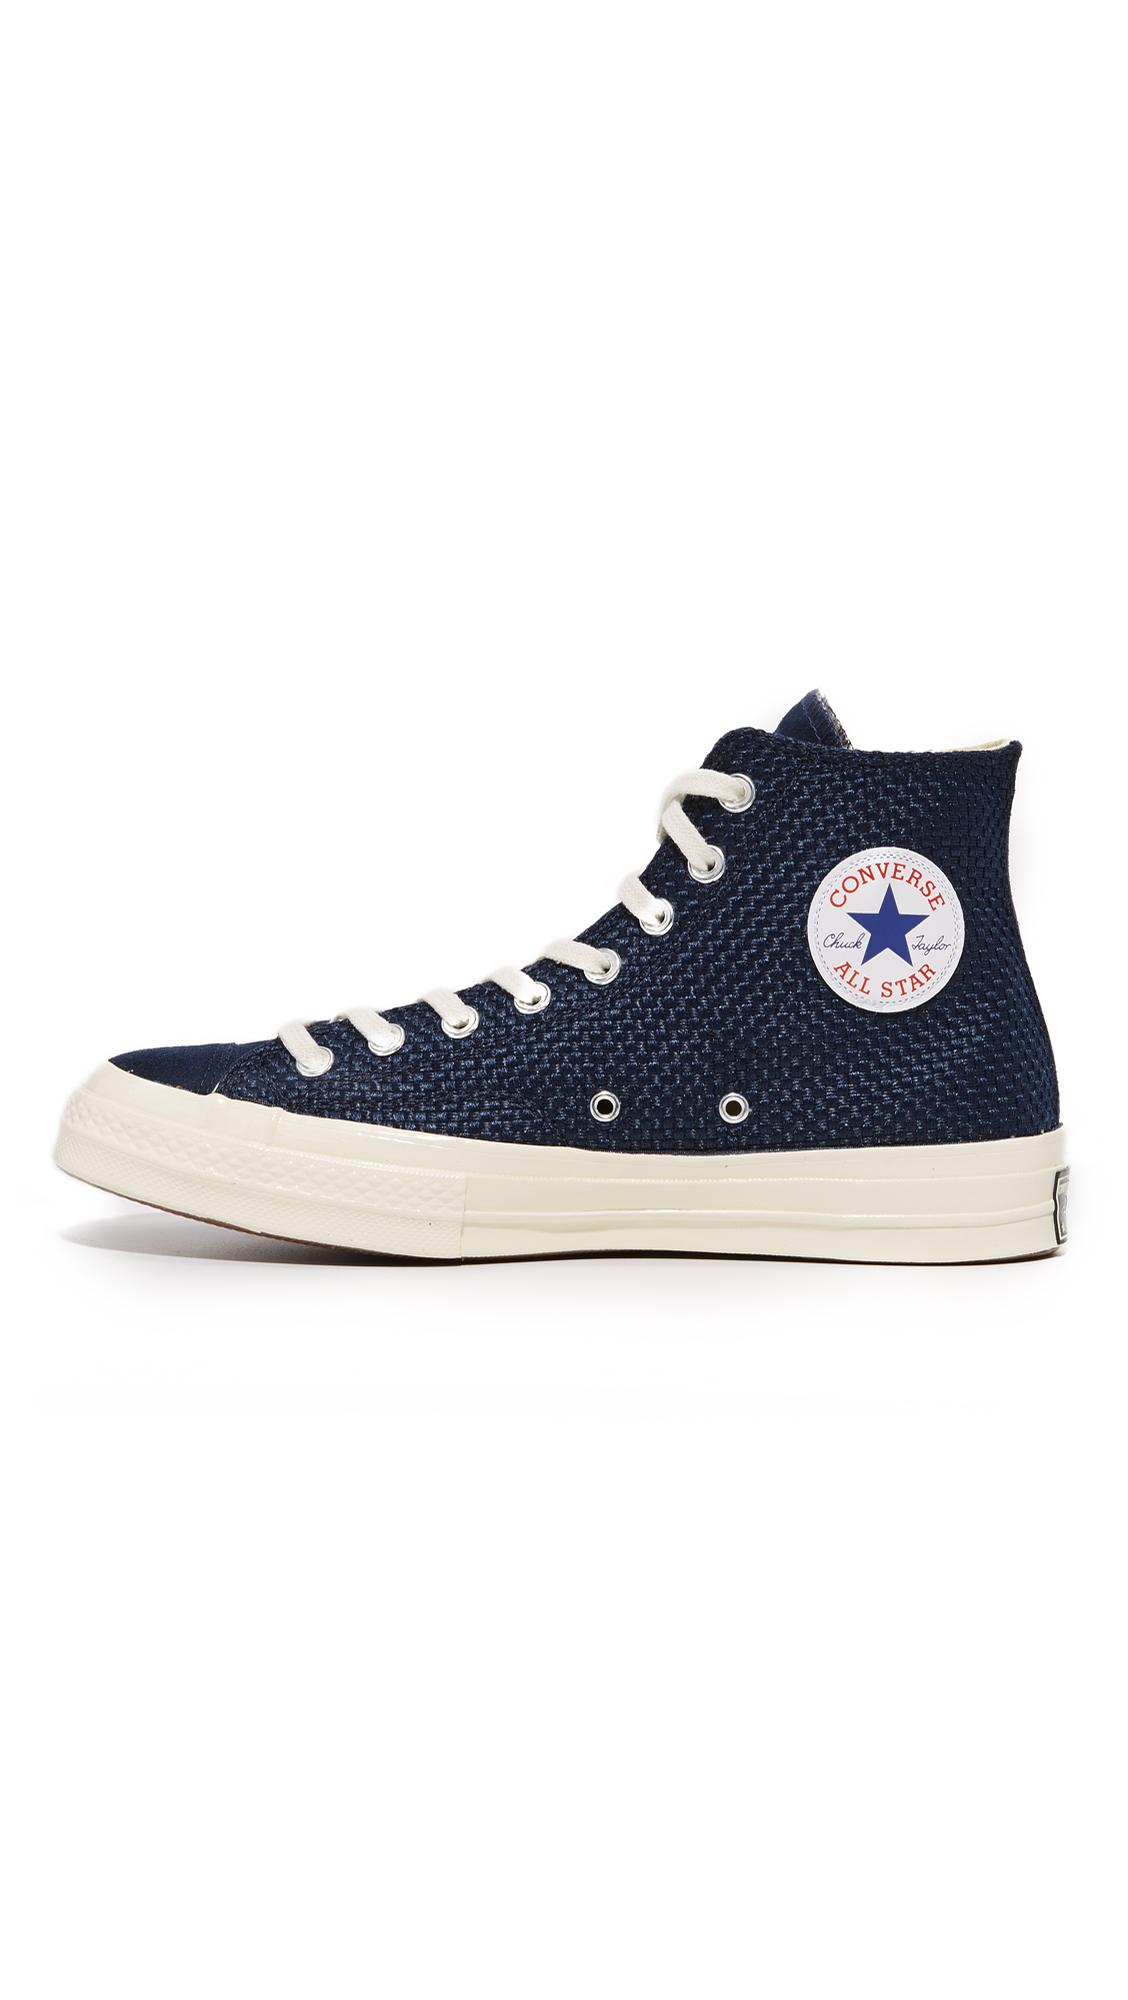 45312d99a5da Converse Chuck Taylor All Star  70s Woven High Top Sneakers in Blue ...